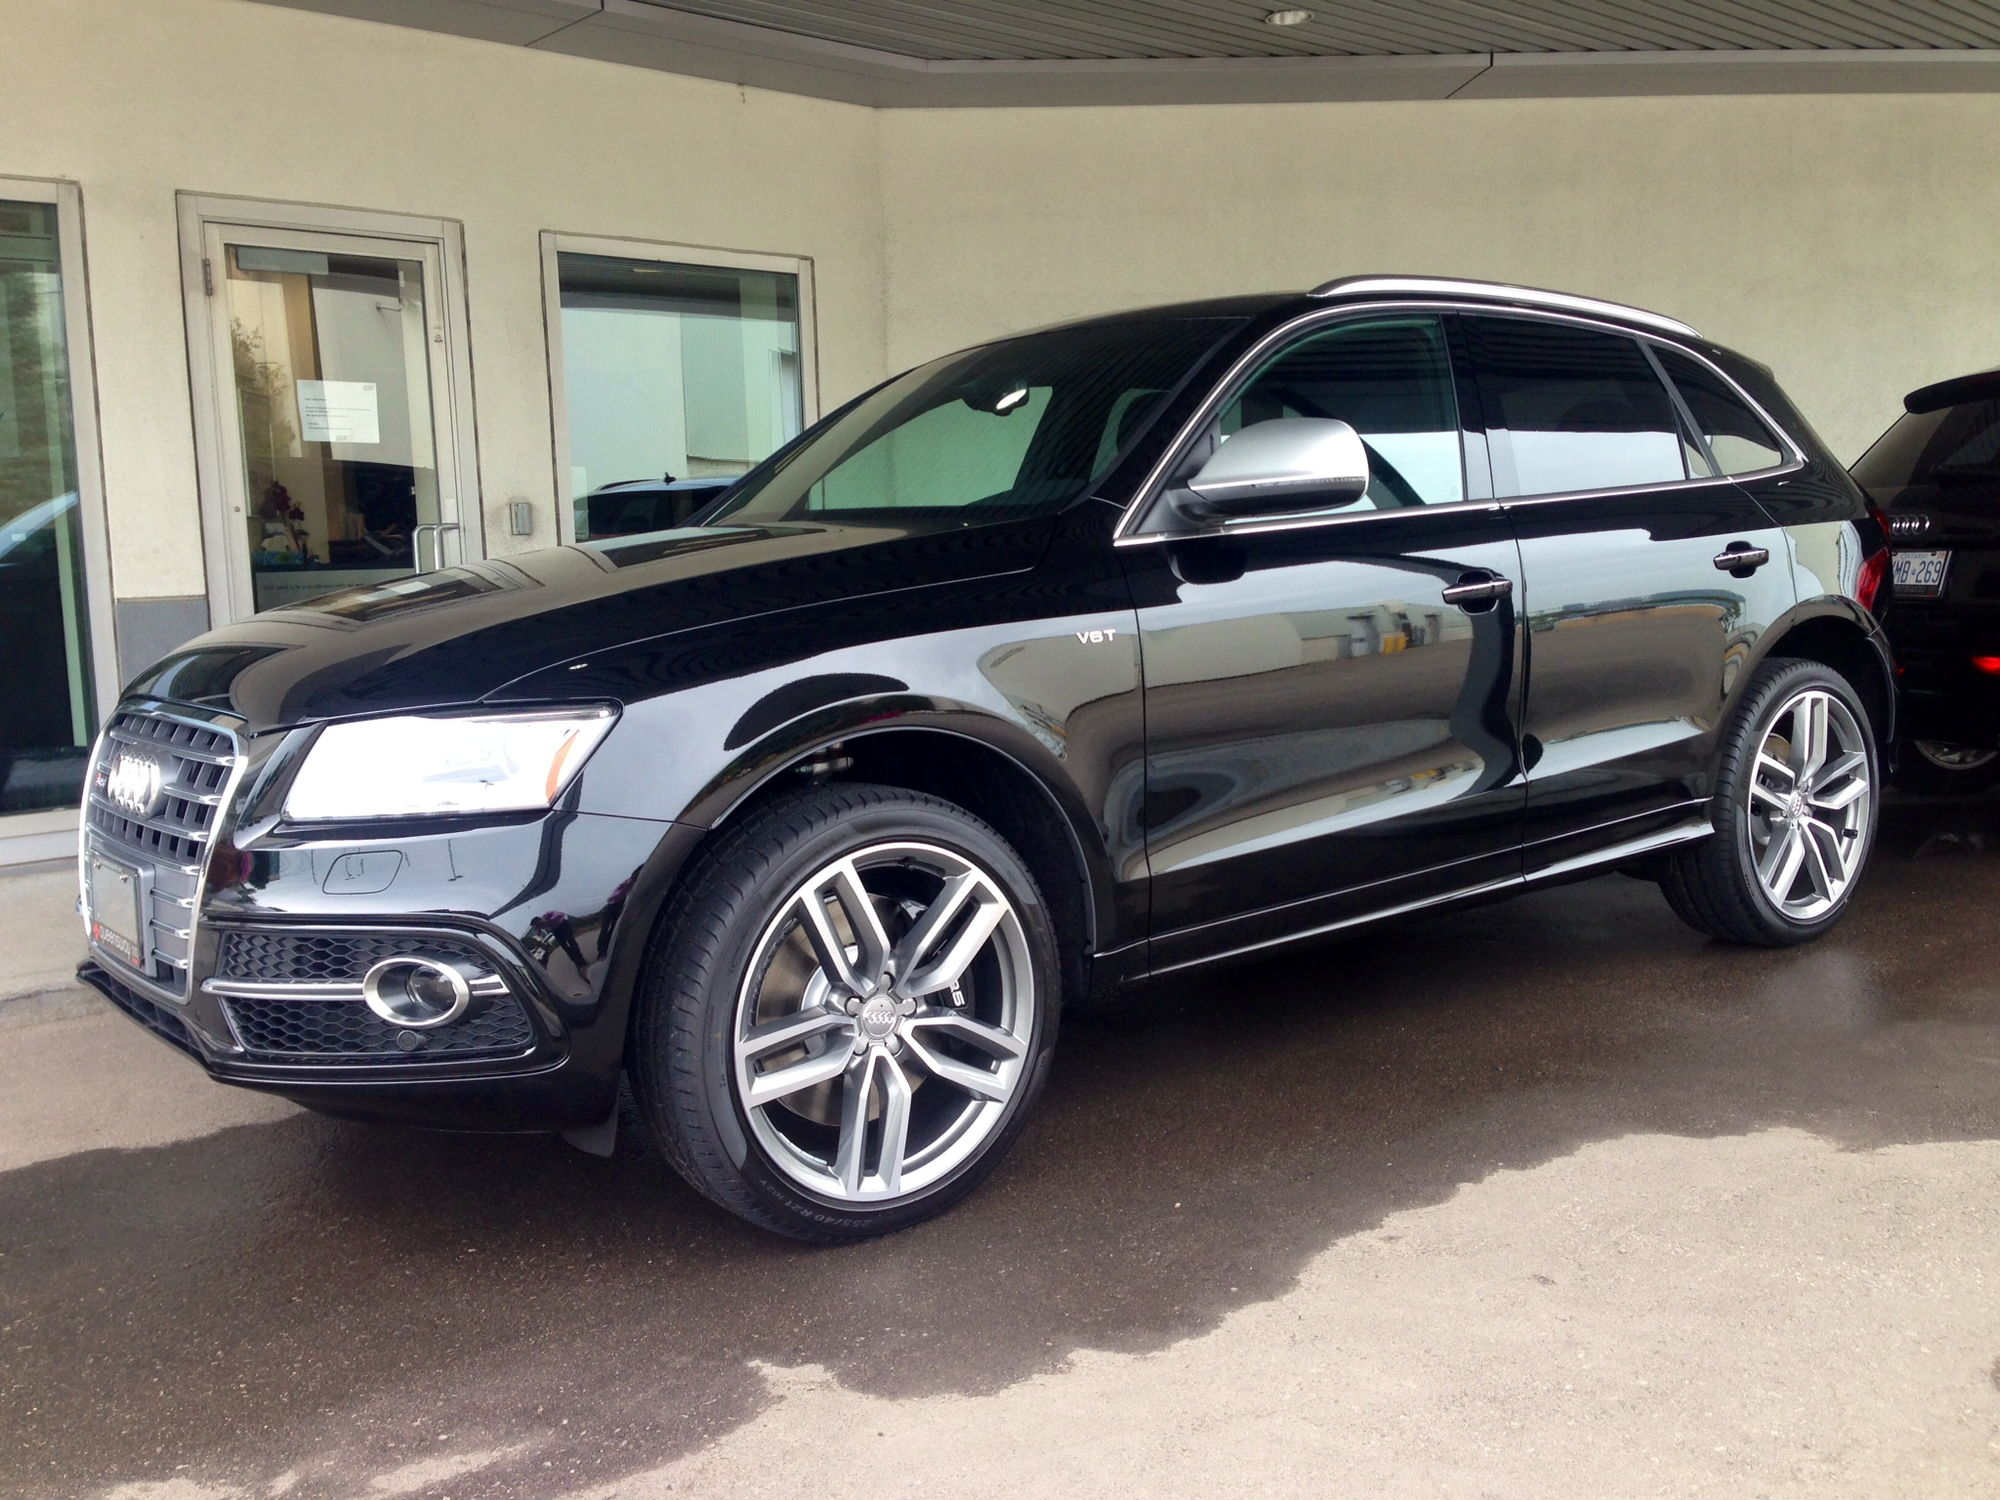 Al here s my new 15 sq5 in mythos blk metallic my interiors are the same as jaxen got the technik version have you placed your order yet